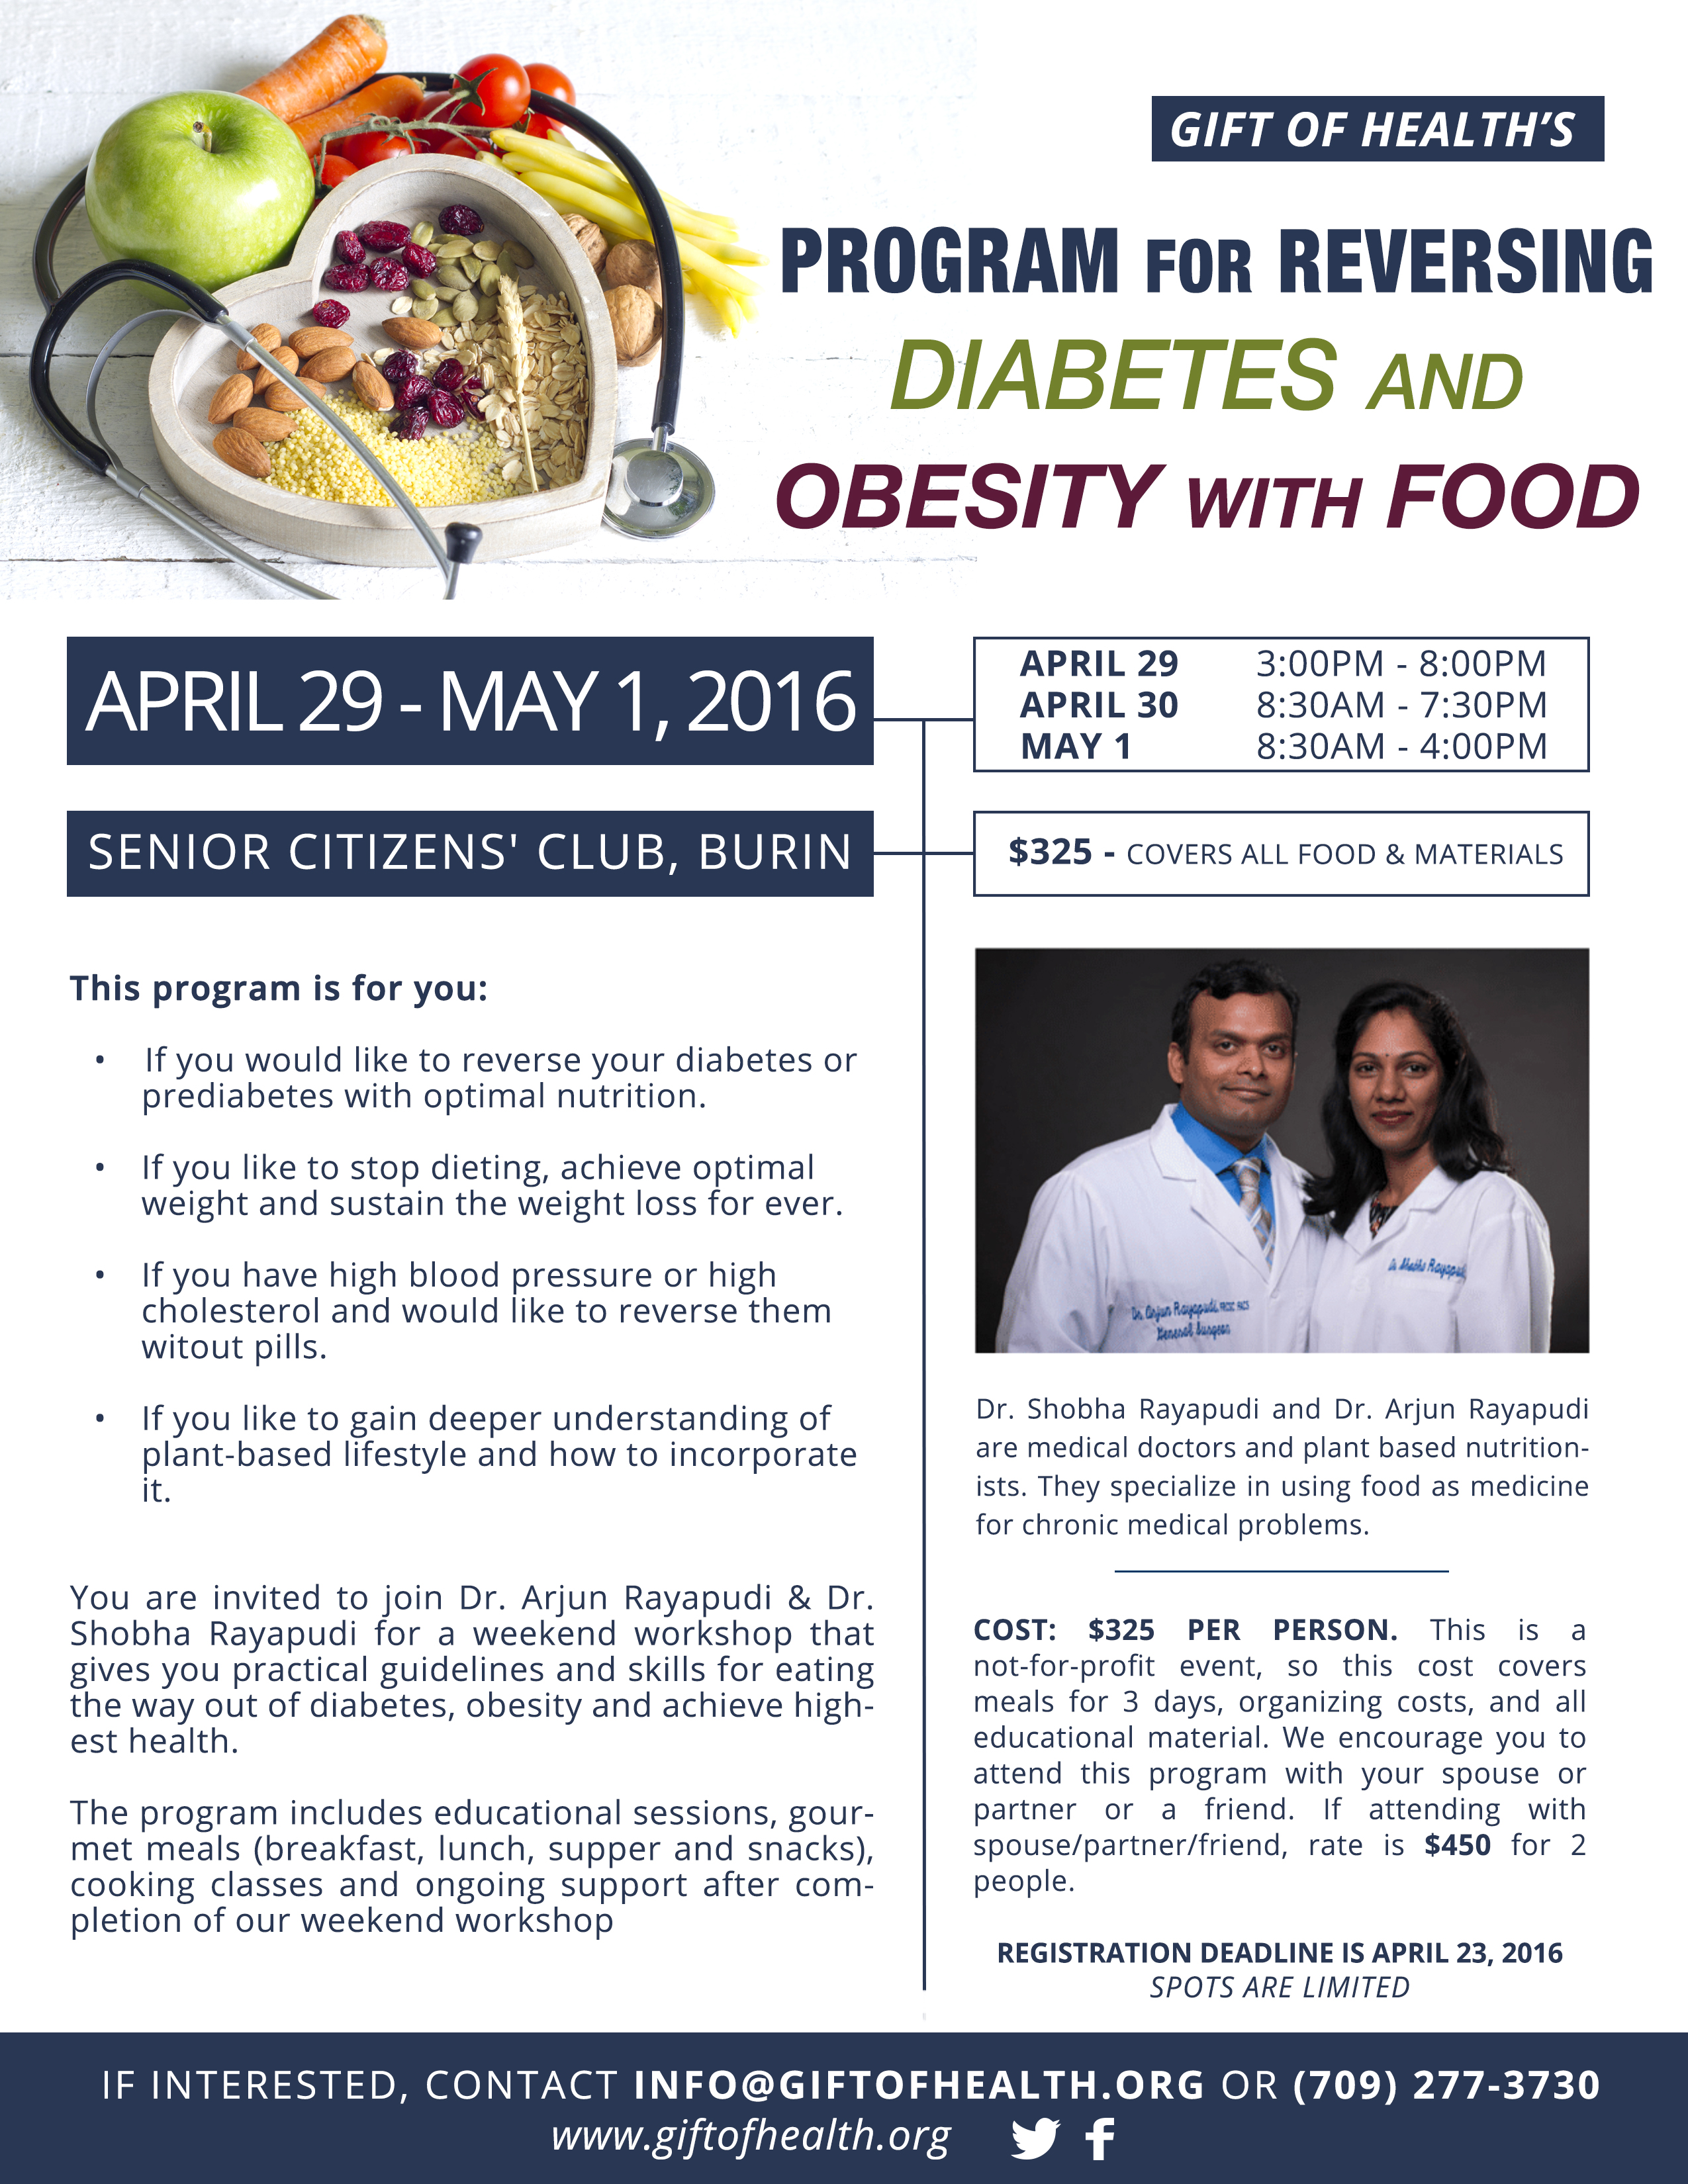 Program for Reversing Diabetes & Obesity with Food